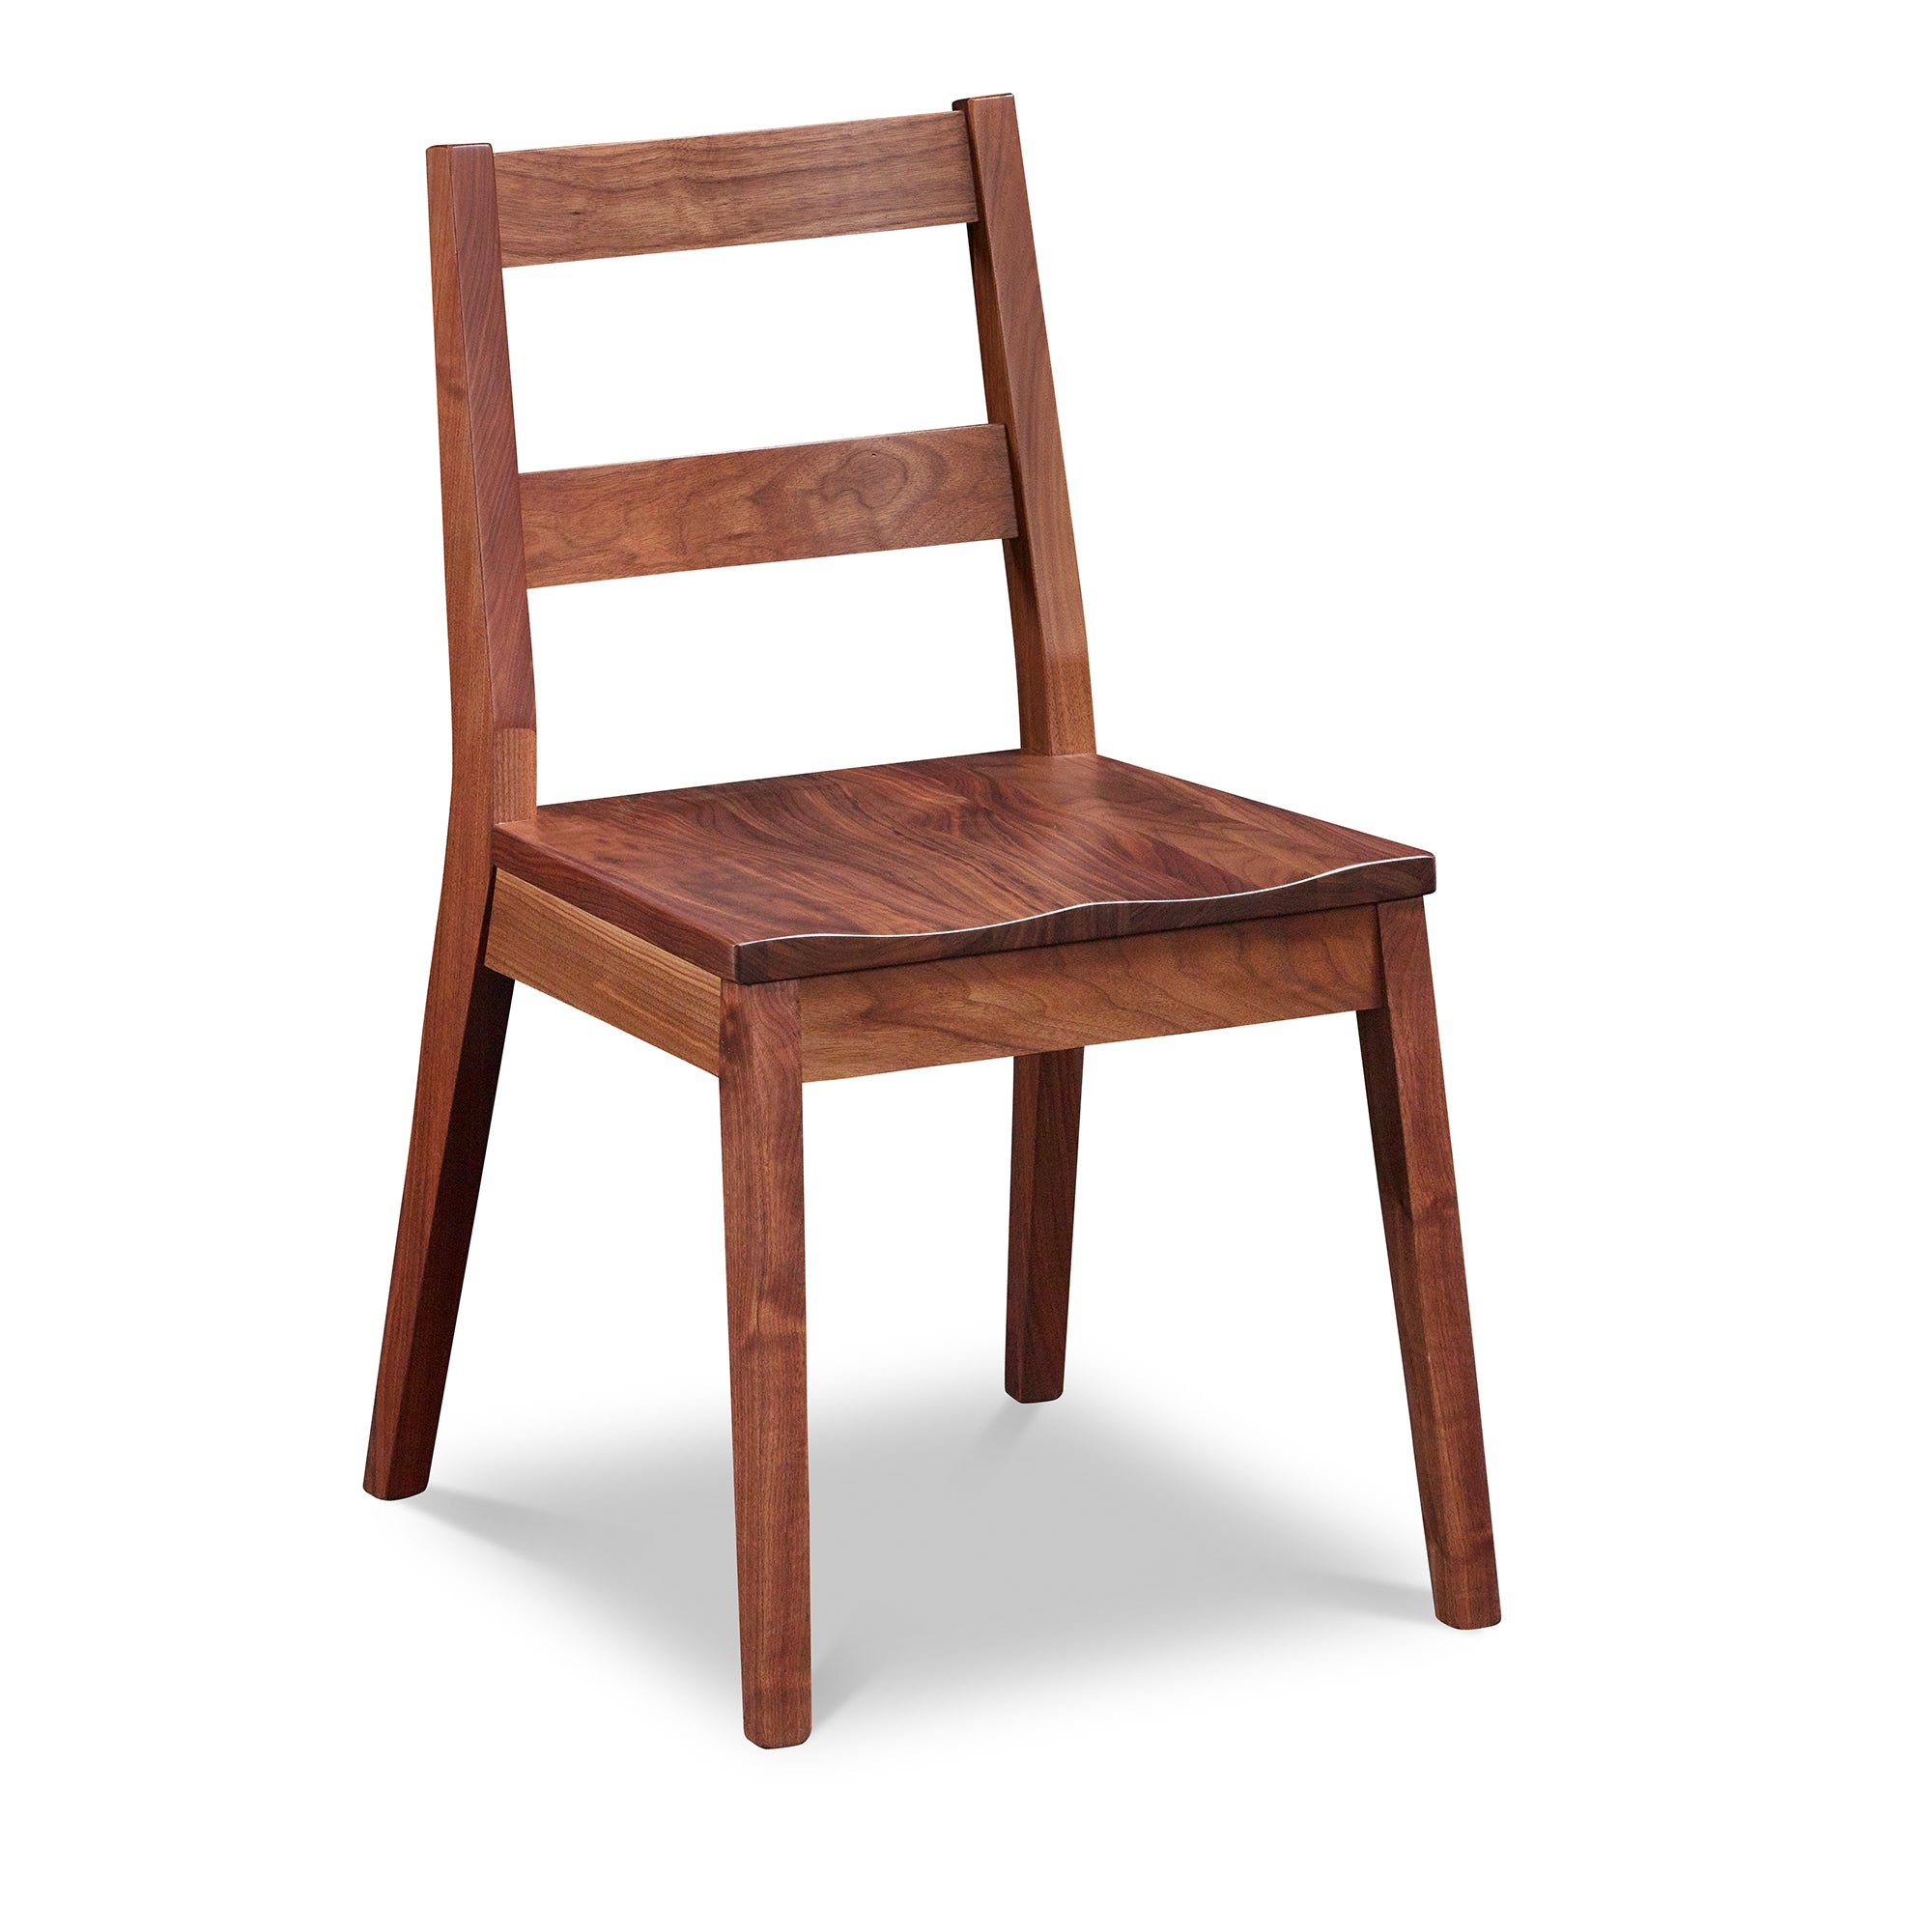 Modern Bridgton side chair with two-slat ladder back in walnut, from Maine's Chilton Furniture Co.